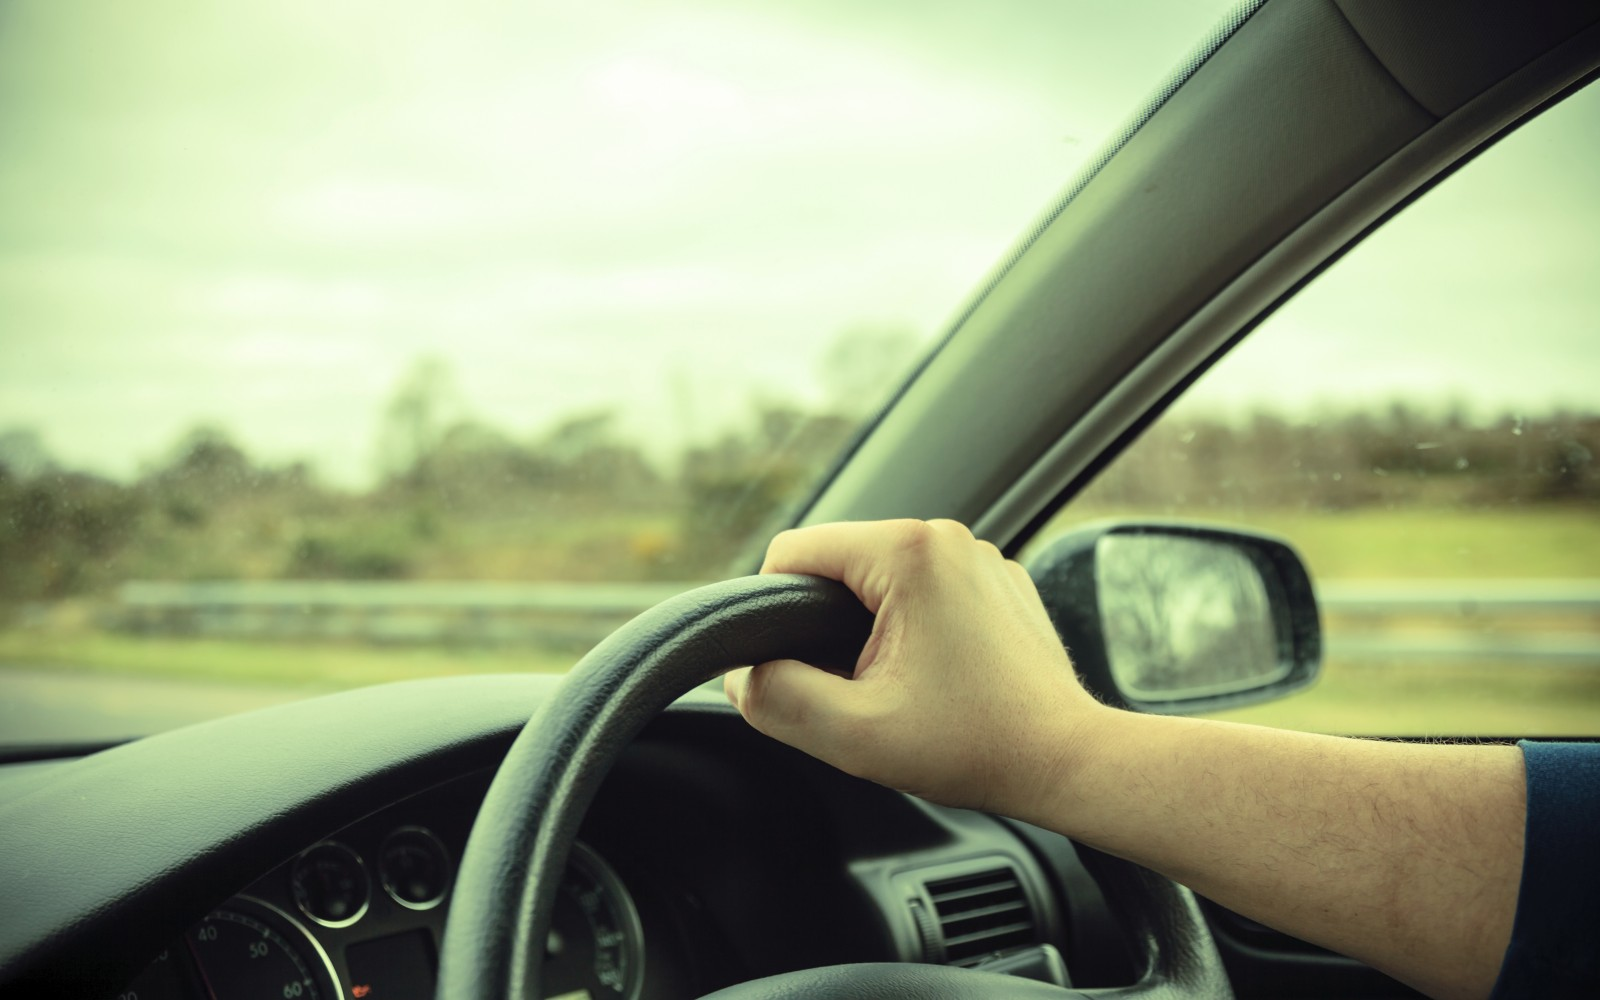 How To Get Insurance For Convicted Drivers?